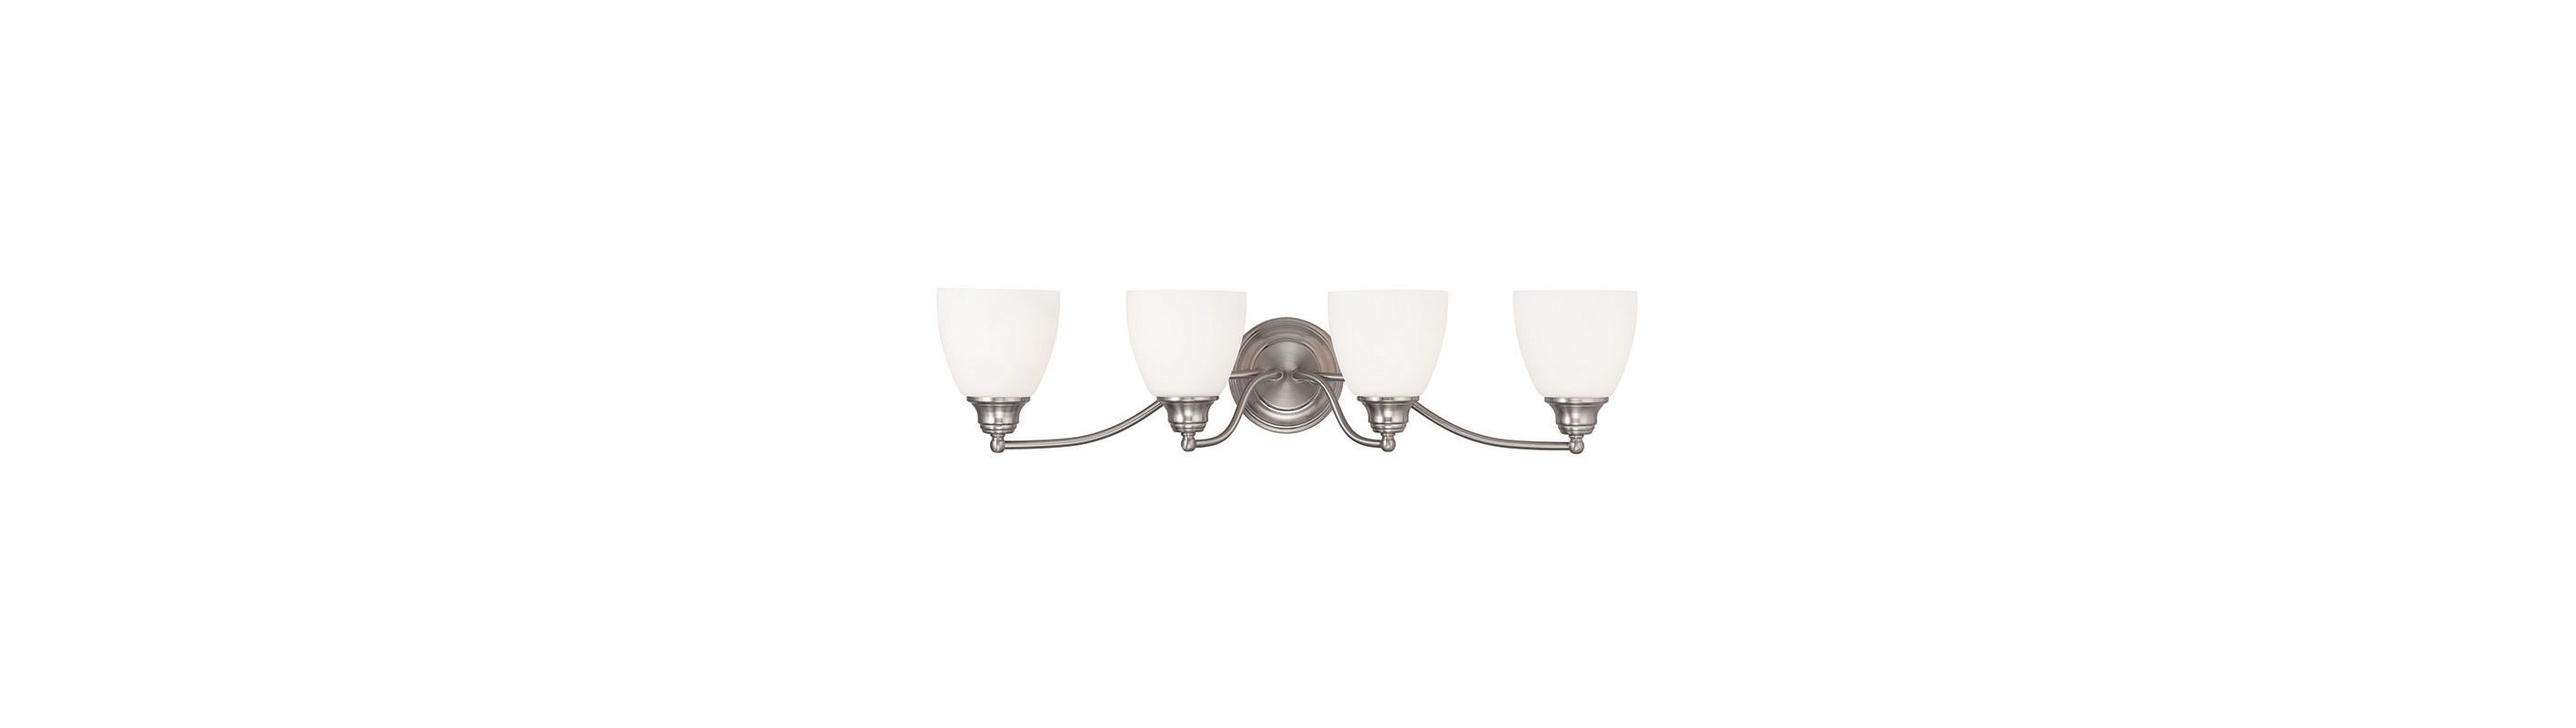 Livex Lighting 13674 Somerville 4 Light Bathroom Vanity Light Brushed